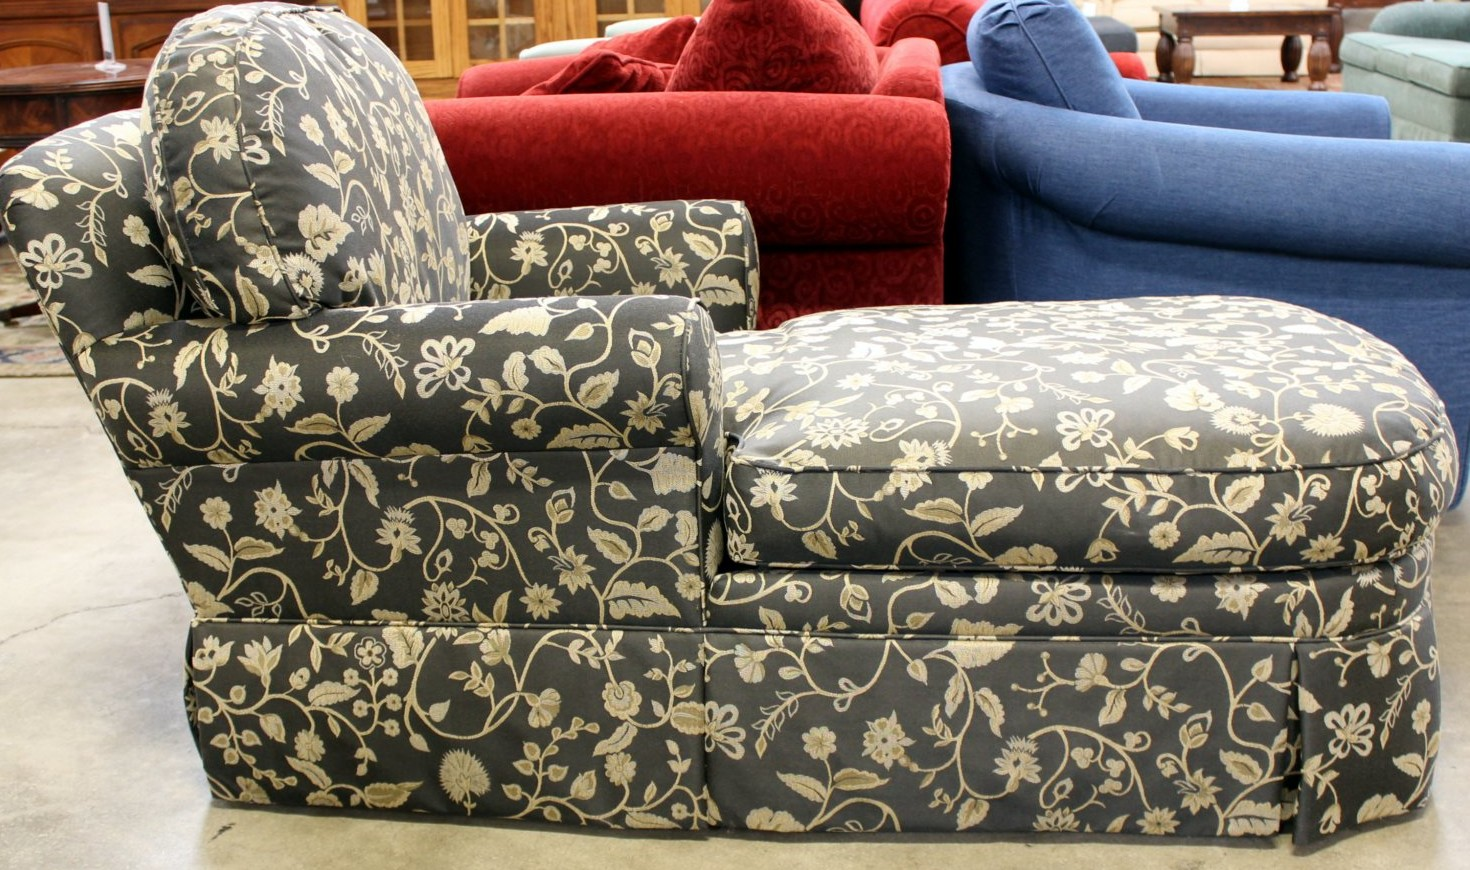 Black floral chaise lounge available at Upscale Consignment